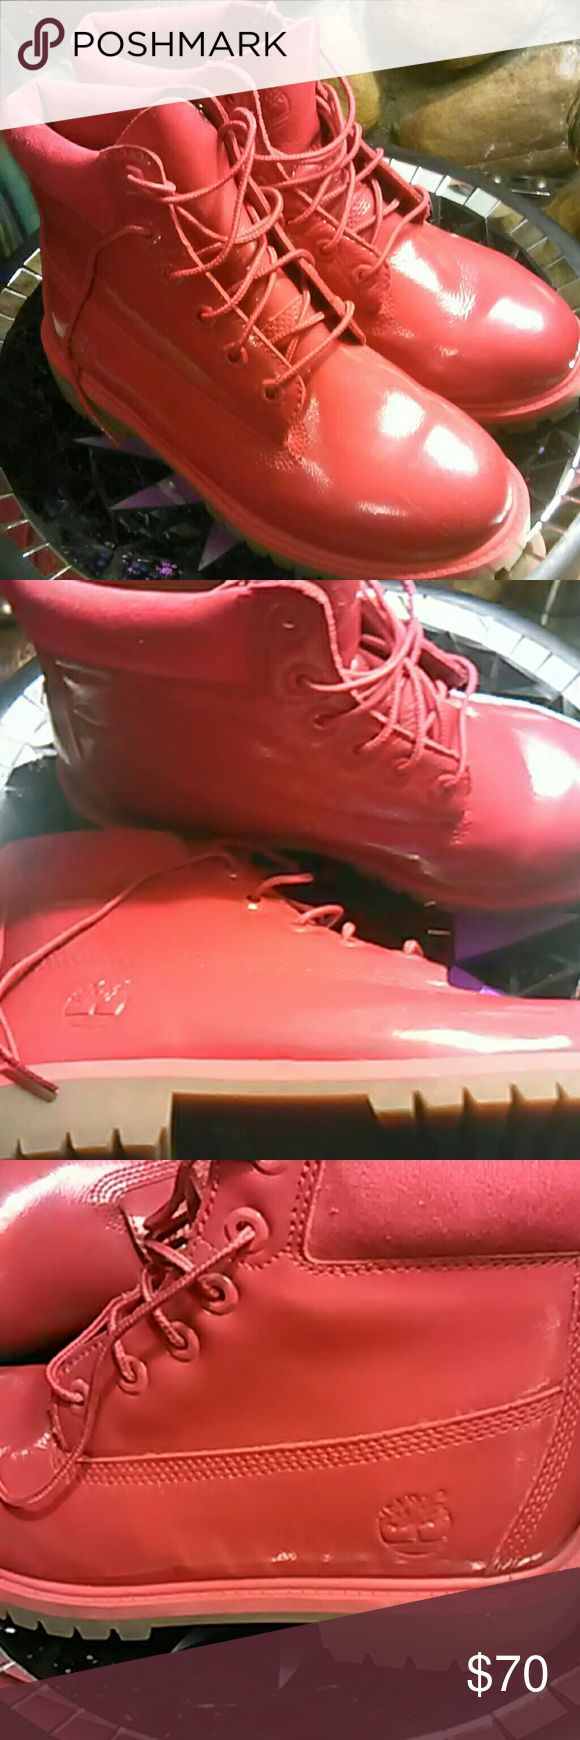 Timberland boots size 5.5 Red timberland boots size 5.5 youth.  Equivalent to women's 7.5 or 8 Timberland Shoes Winter & Rain Boots